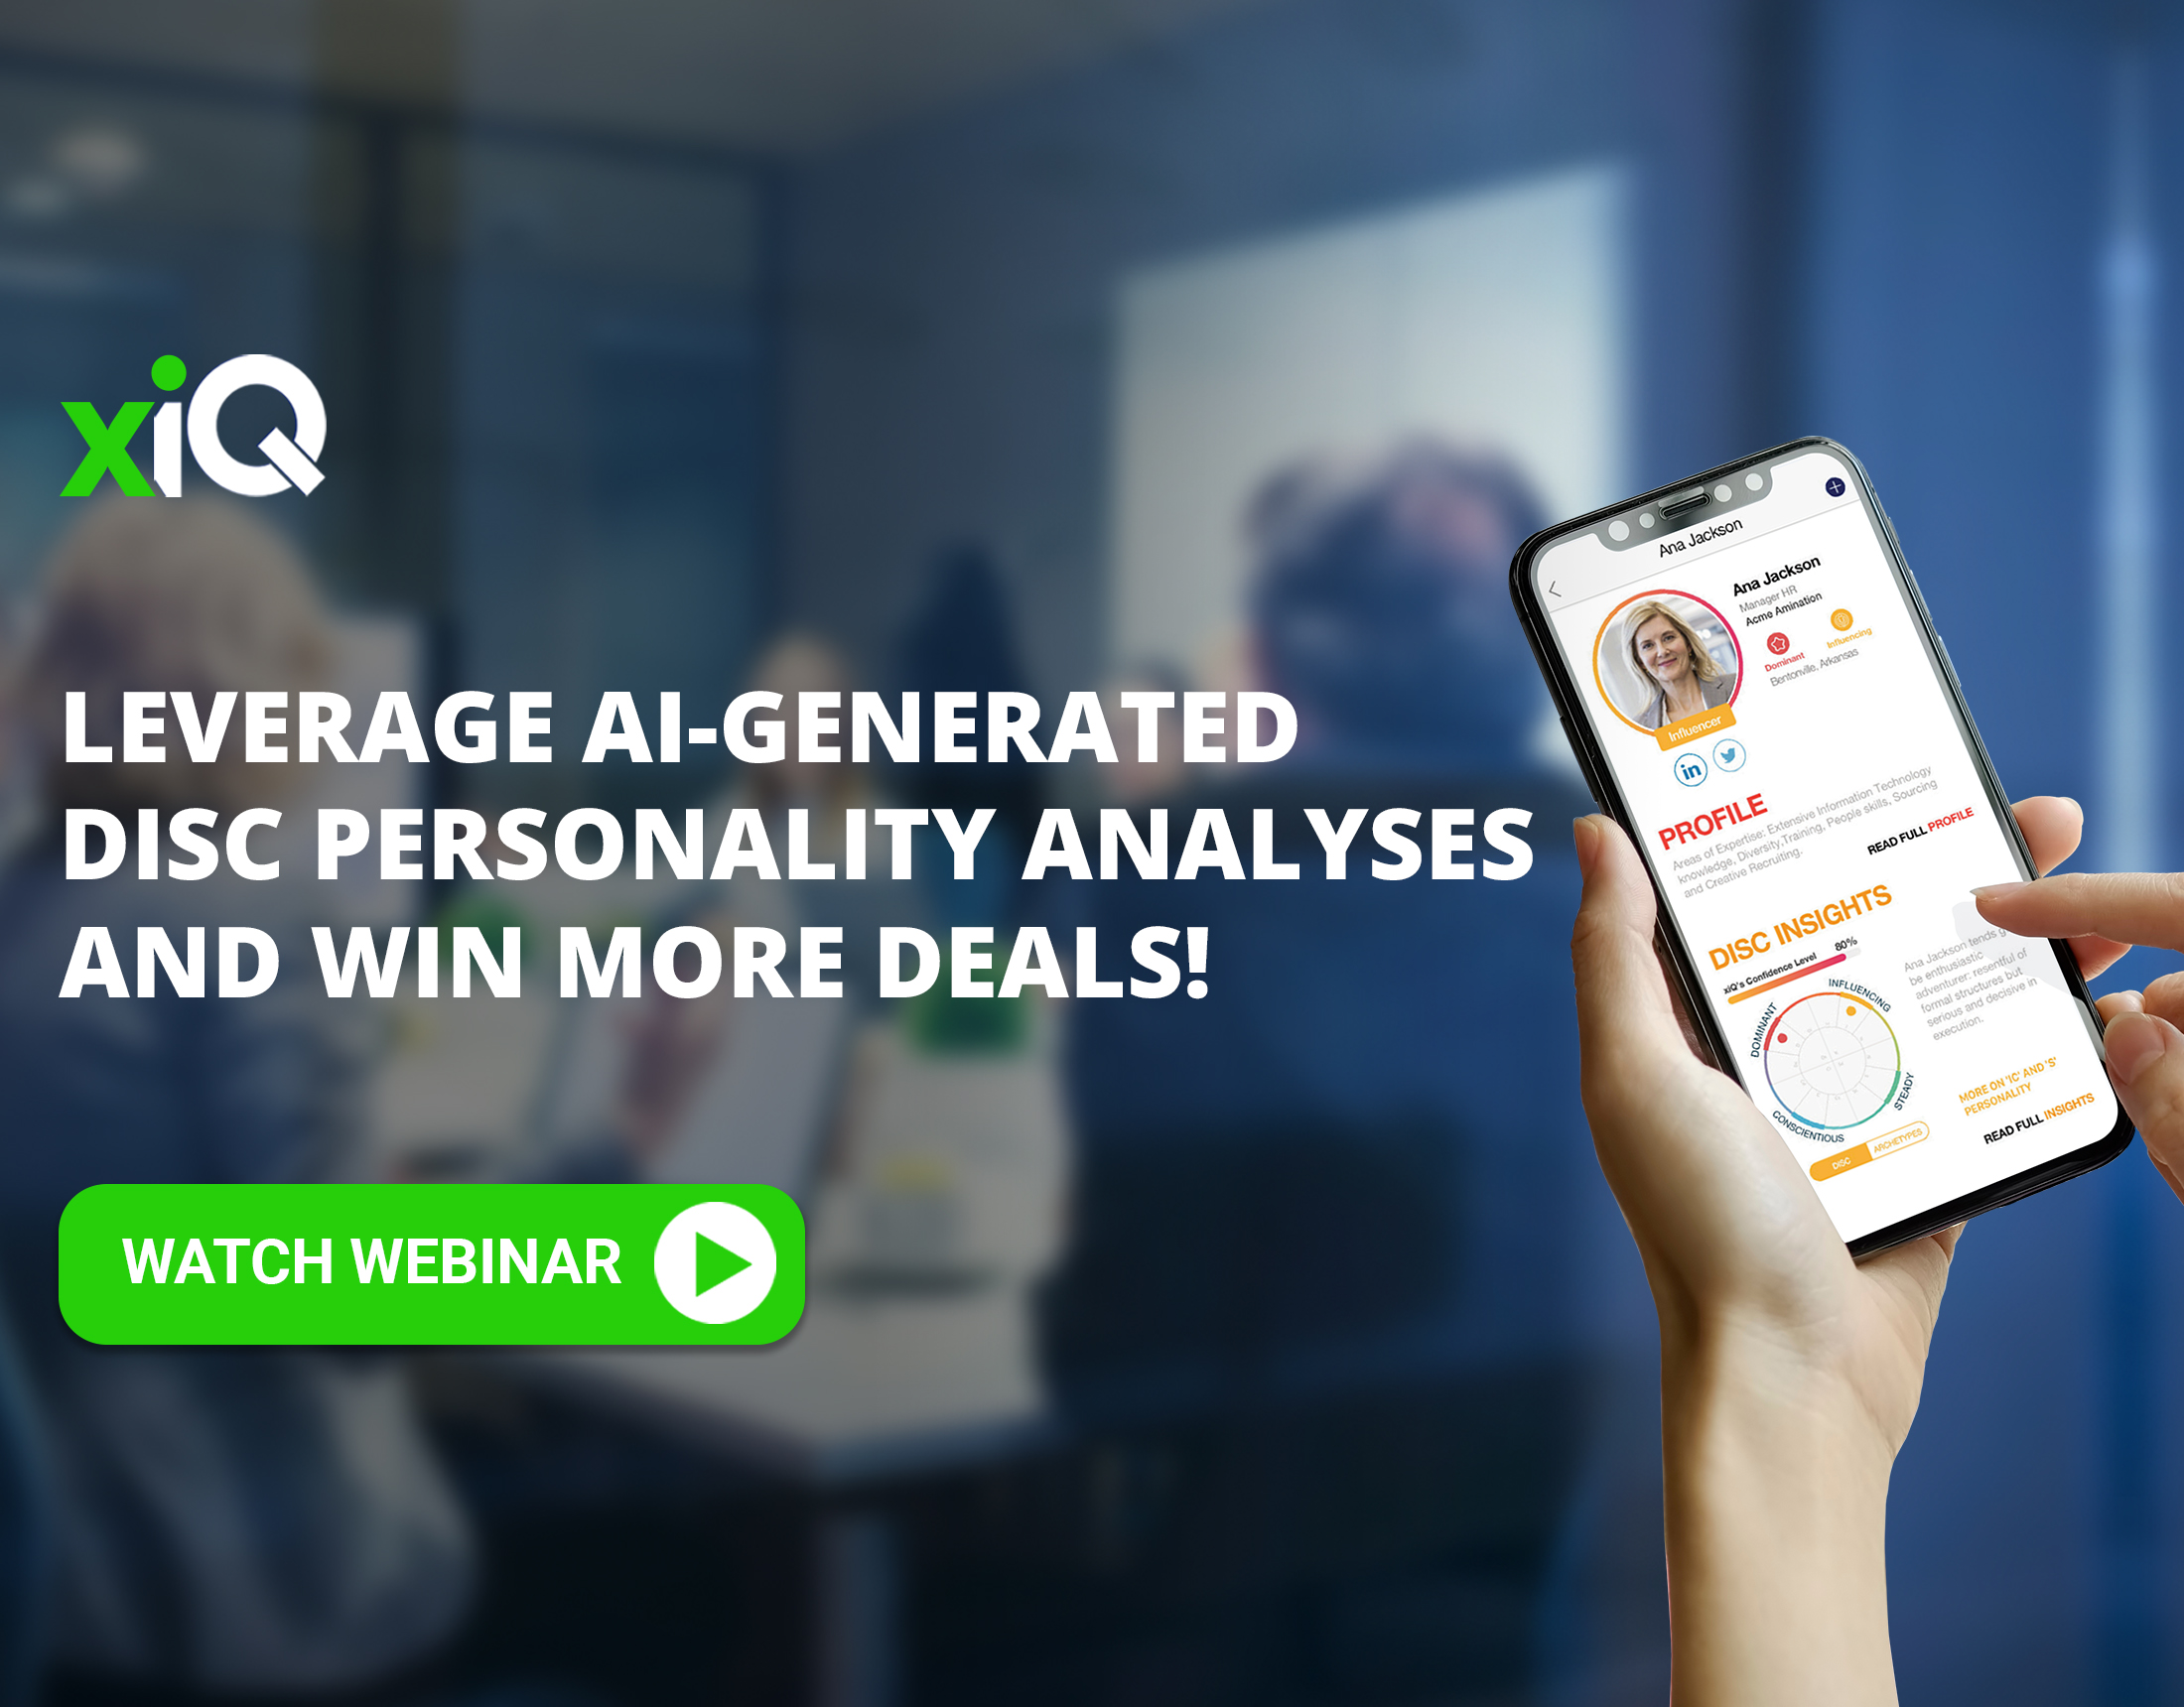 Leverage AI-generated DISC Personality Analyses and Win More Deals!